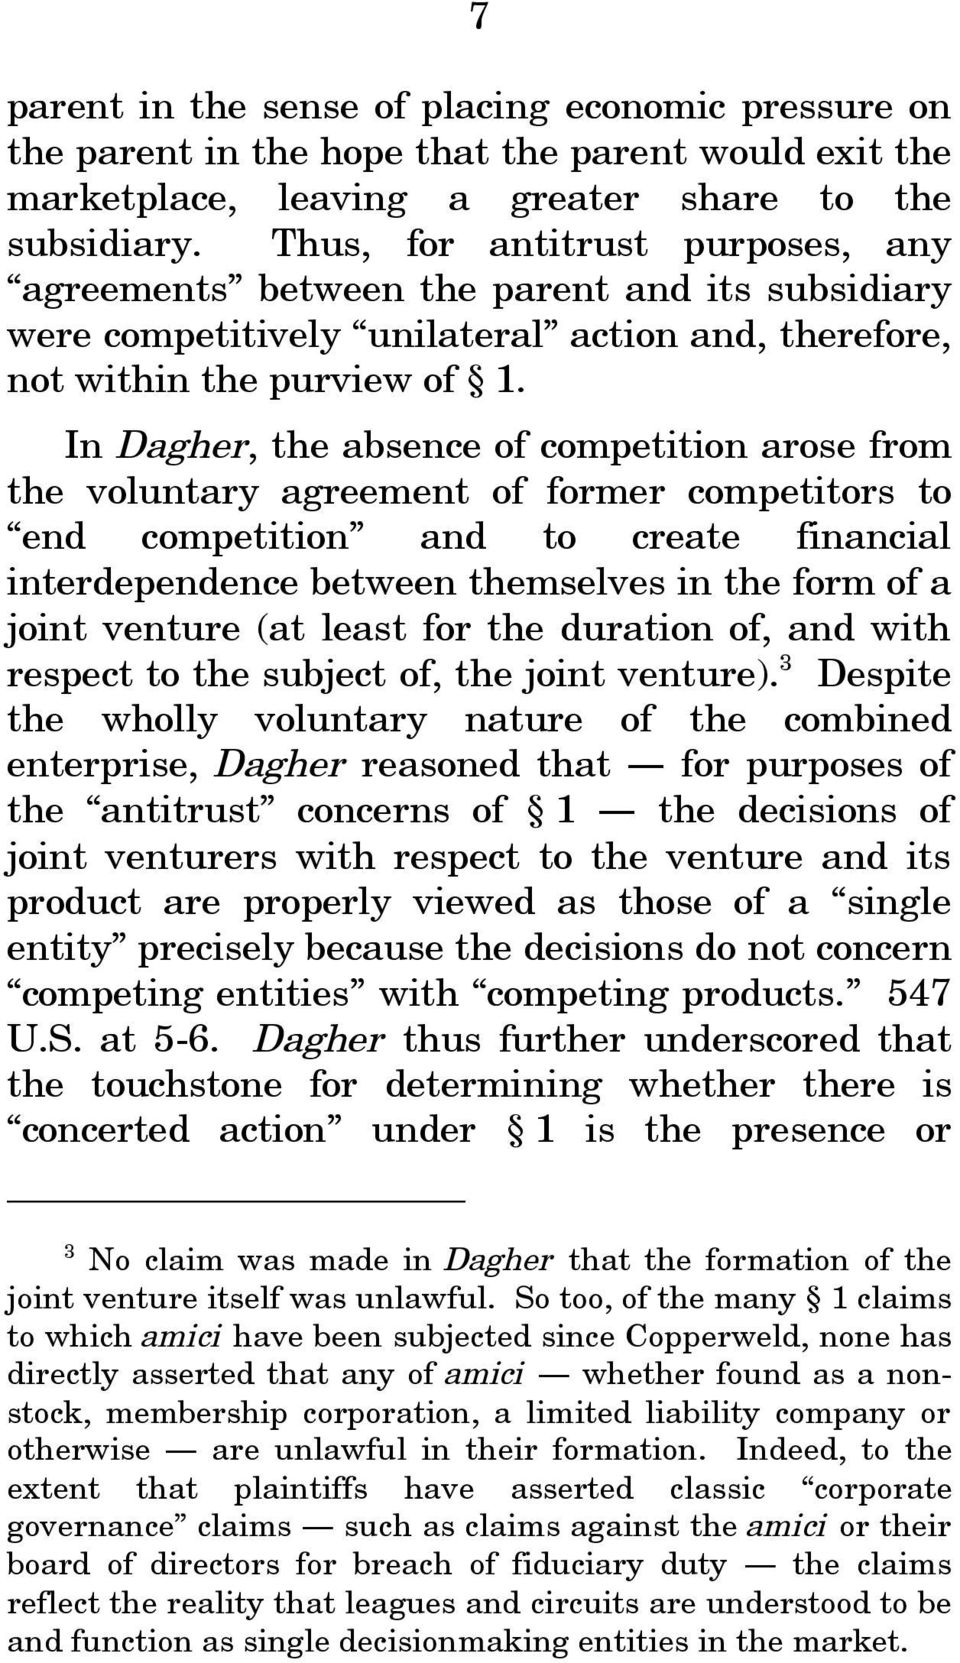 In Dagher, the absence of competition arose from the voluntary agreement of former competitors to end competition and to create financial interdependence between themselves in the form of a joint